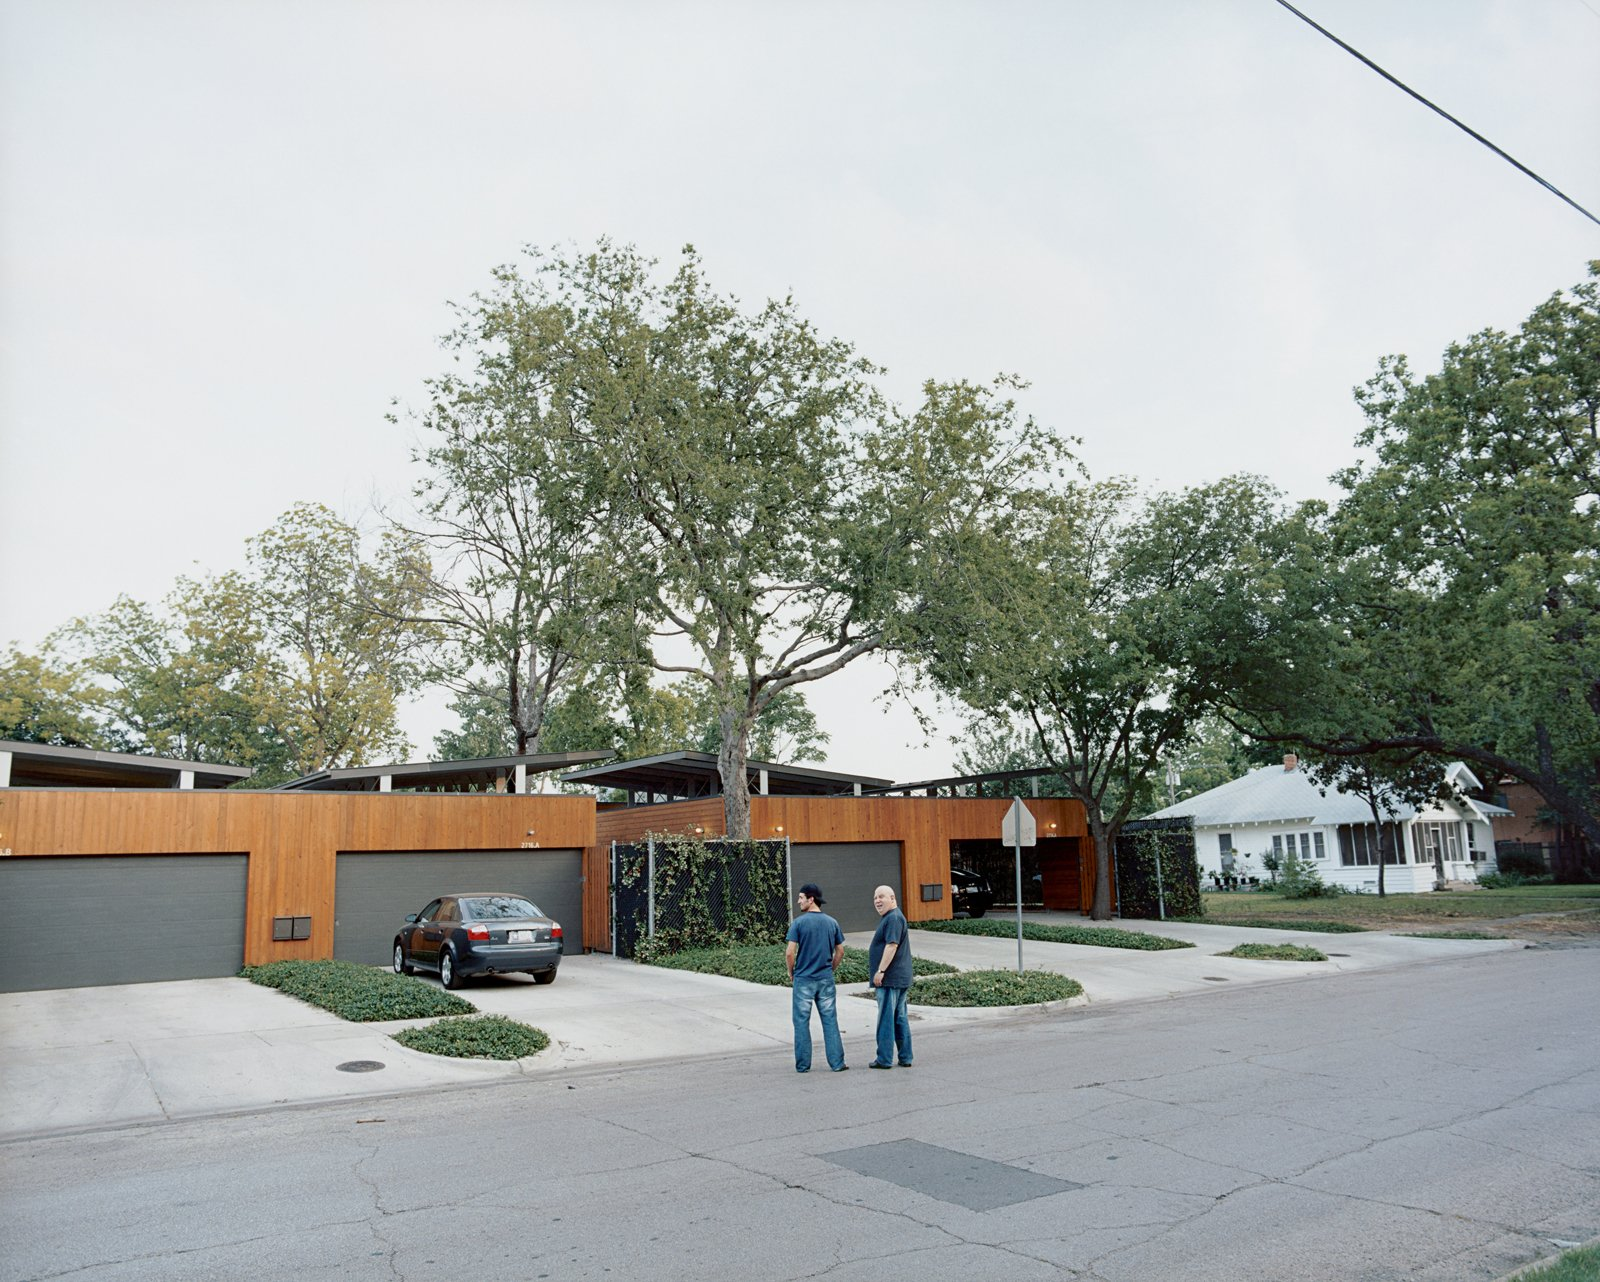 Outside their homes on Throckmorton Street in Dallas, architect Edward Baum (right) and his neighbor admire the fruits of Baum's labors. Photo by: Scogin Mayo  Best Western: Our Favorite Modern Homes in Texas by Aaron Britt from Bringing Families Back to Downtown Dallas